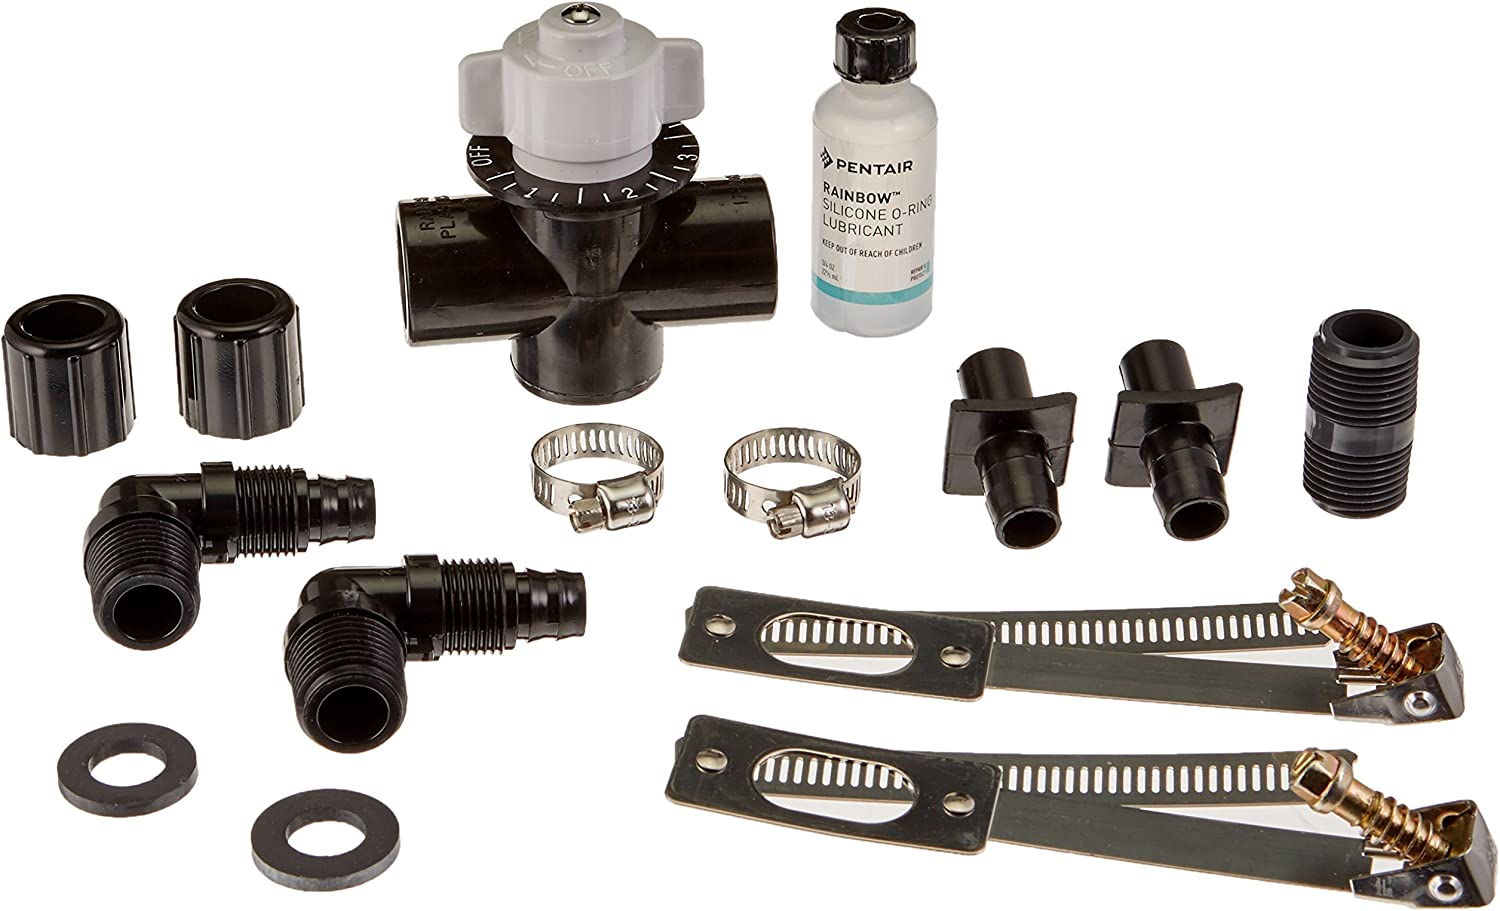 Pentair R172275 Cheap mail order shopping Hardware Package Replacement Sp 300-29X Pool and 4 years warranty